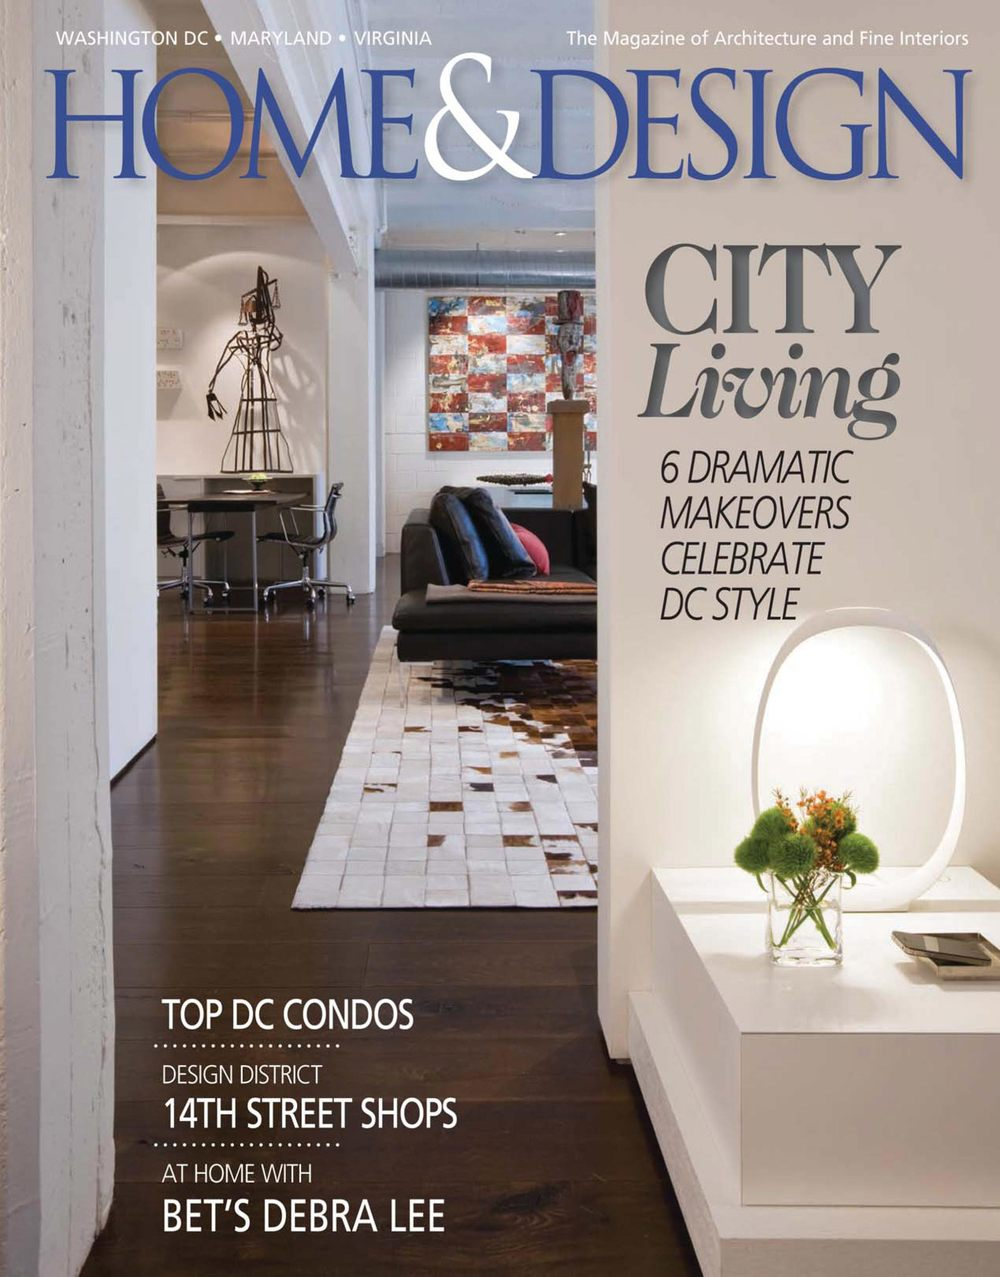 Art Gallery Showcase, Washington Home and Design Magasine, November-December 2013, pp 174, United States